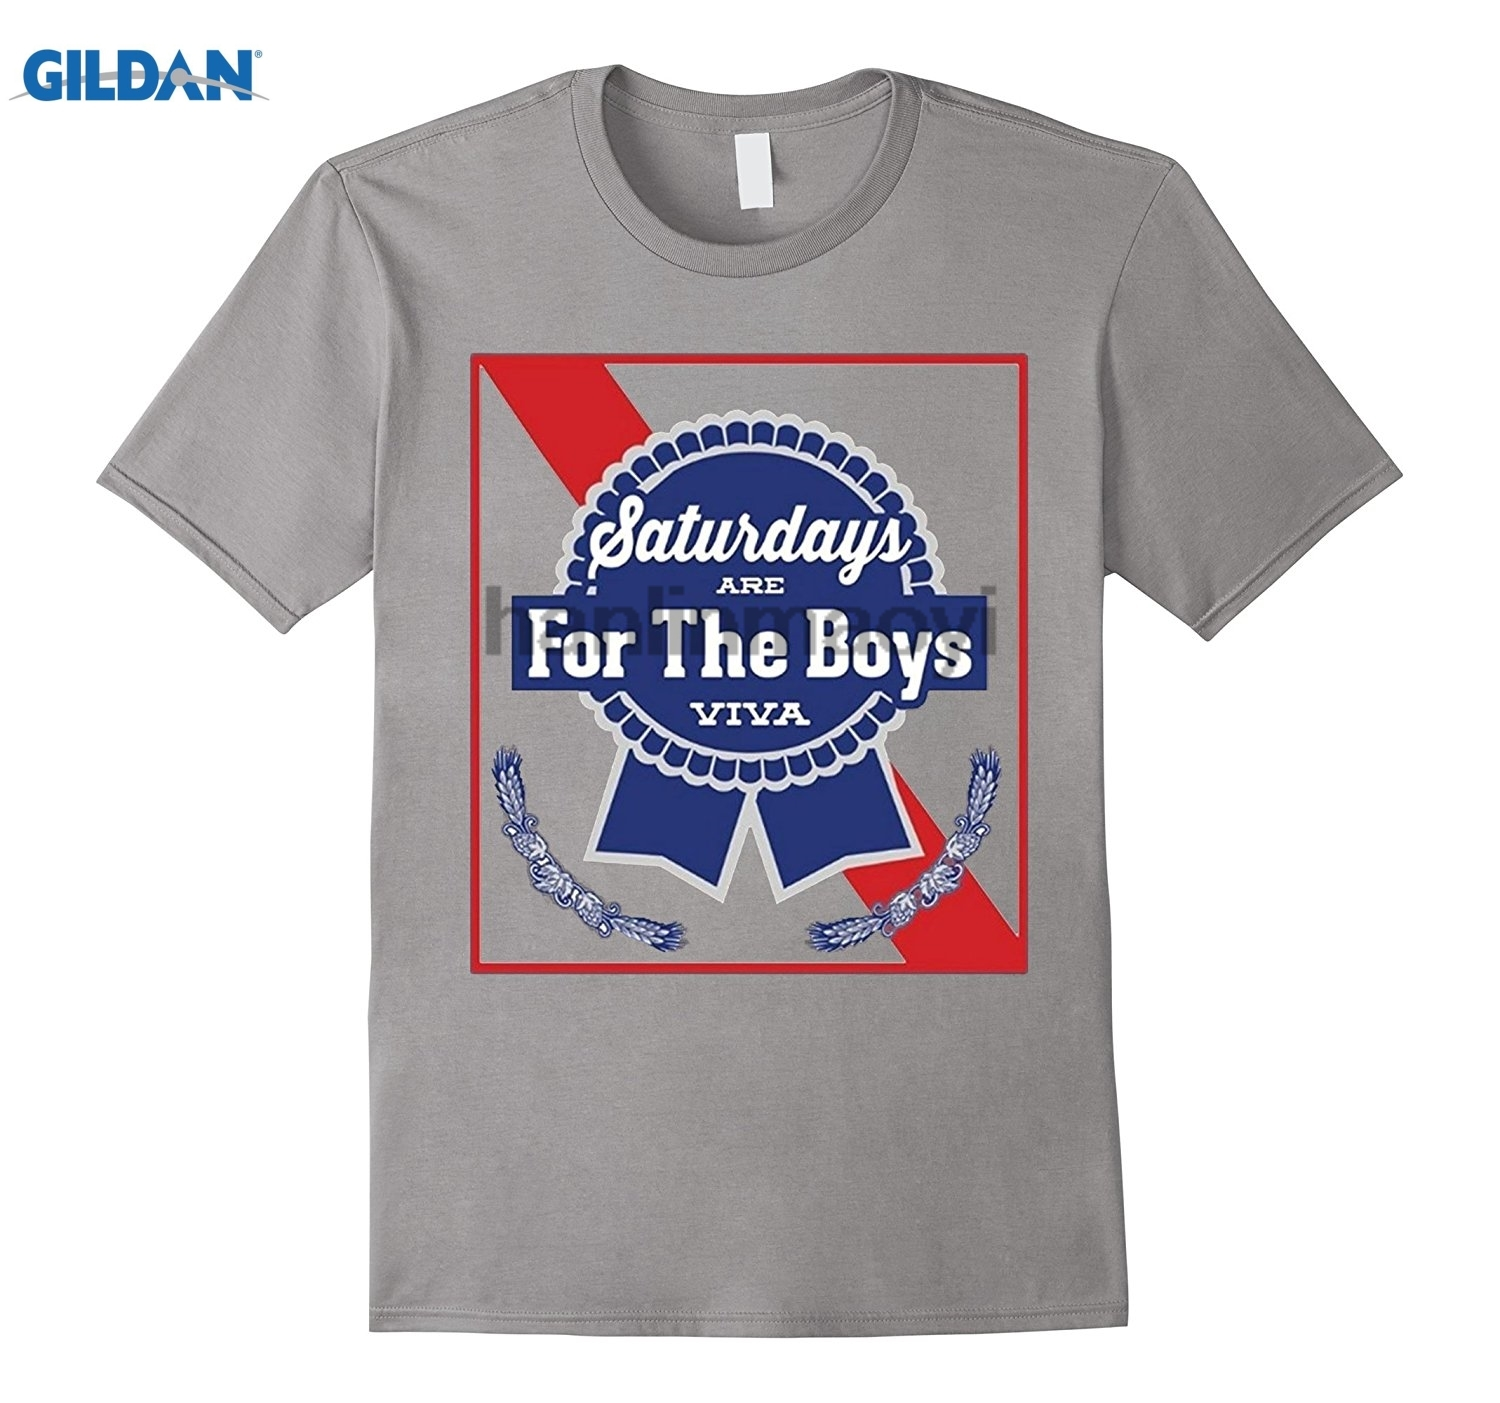 GILDAN Saturdays Are For The Boys TShirt Blue Beer Ribbon Label Can